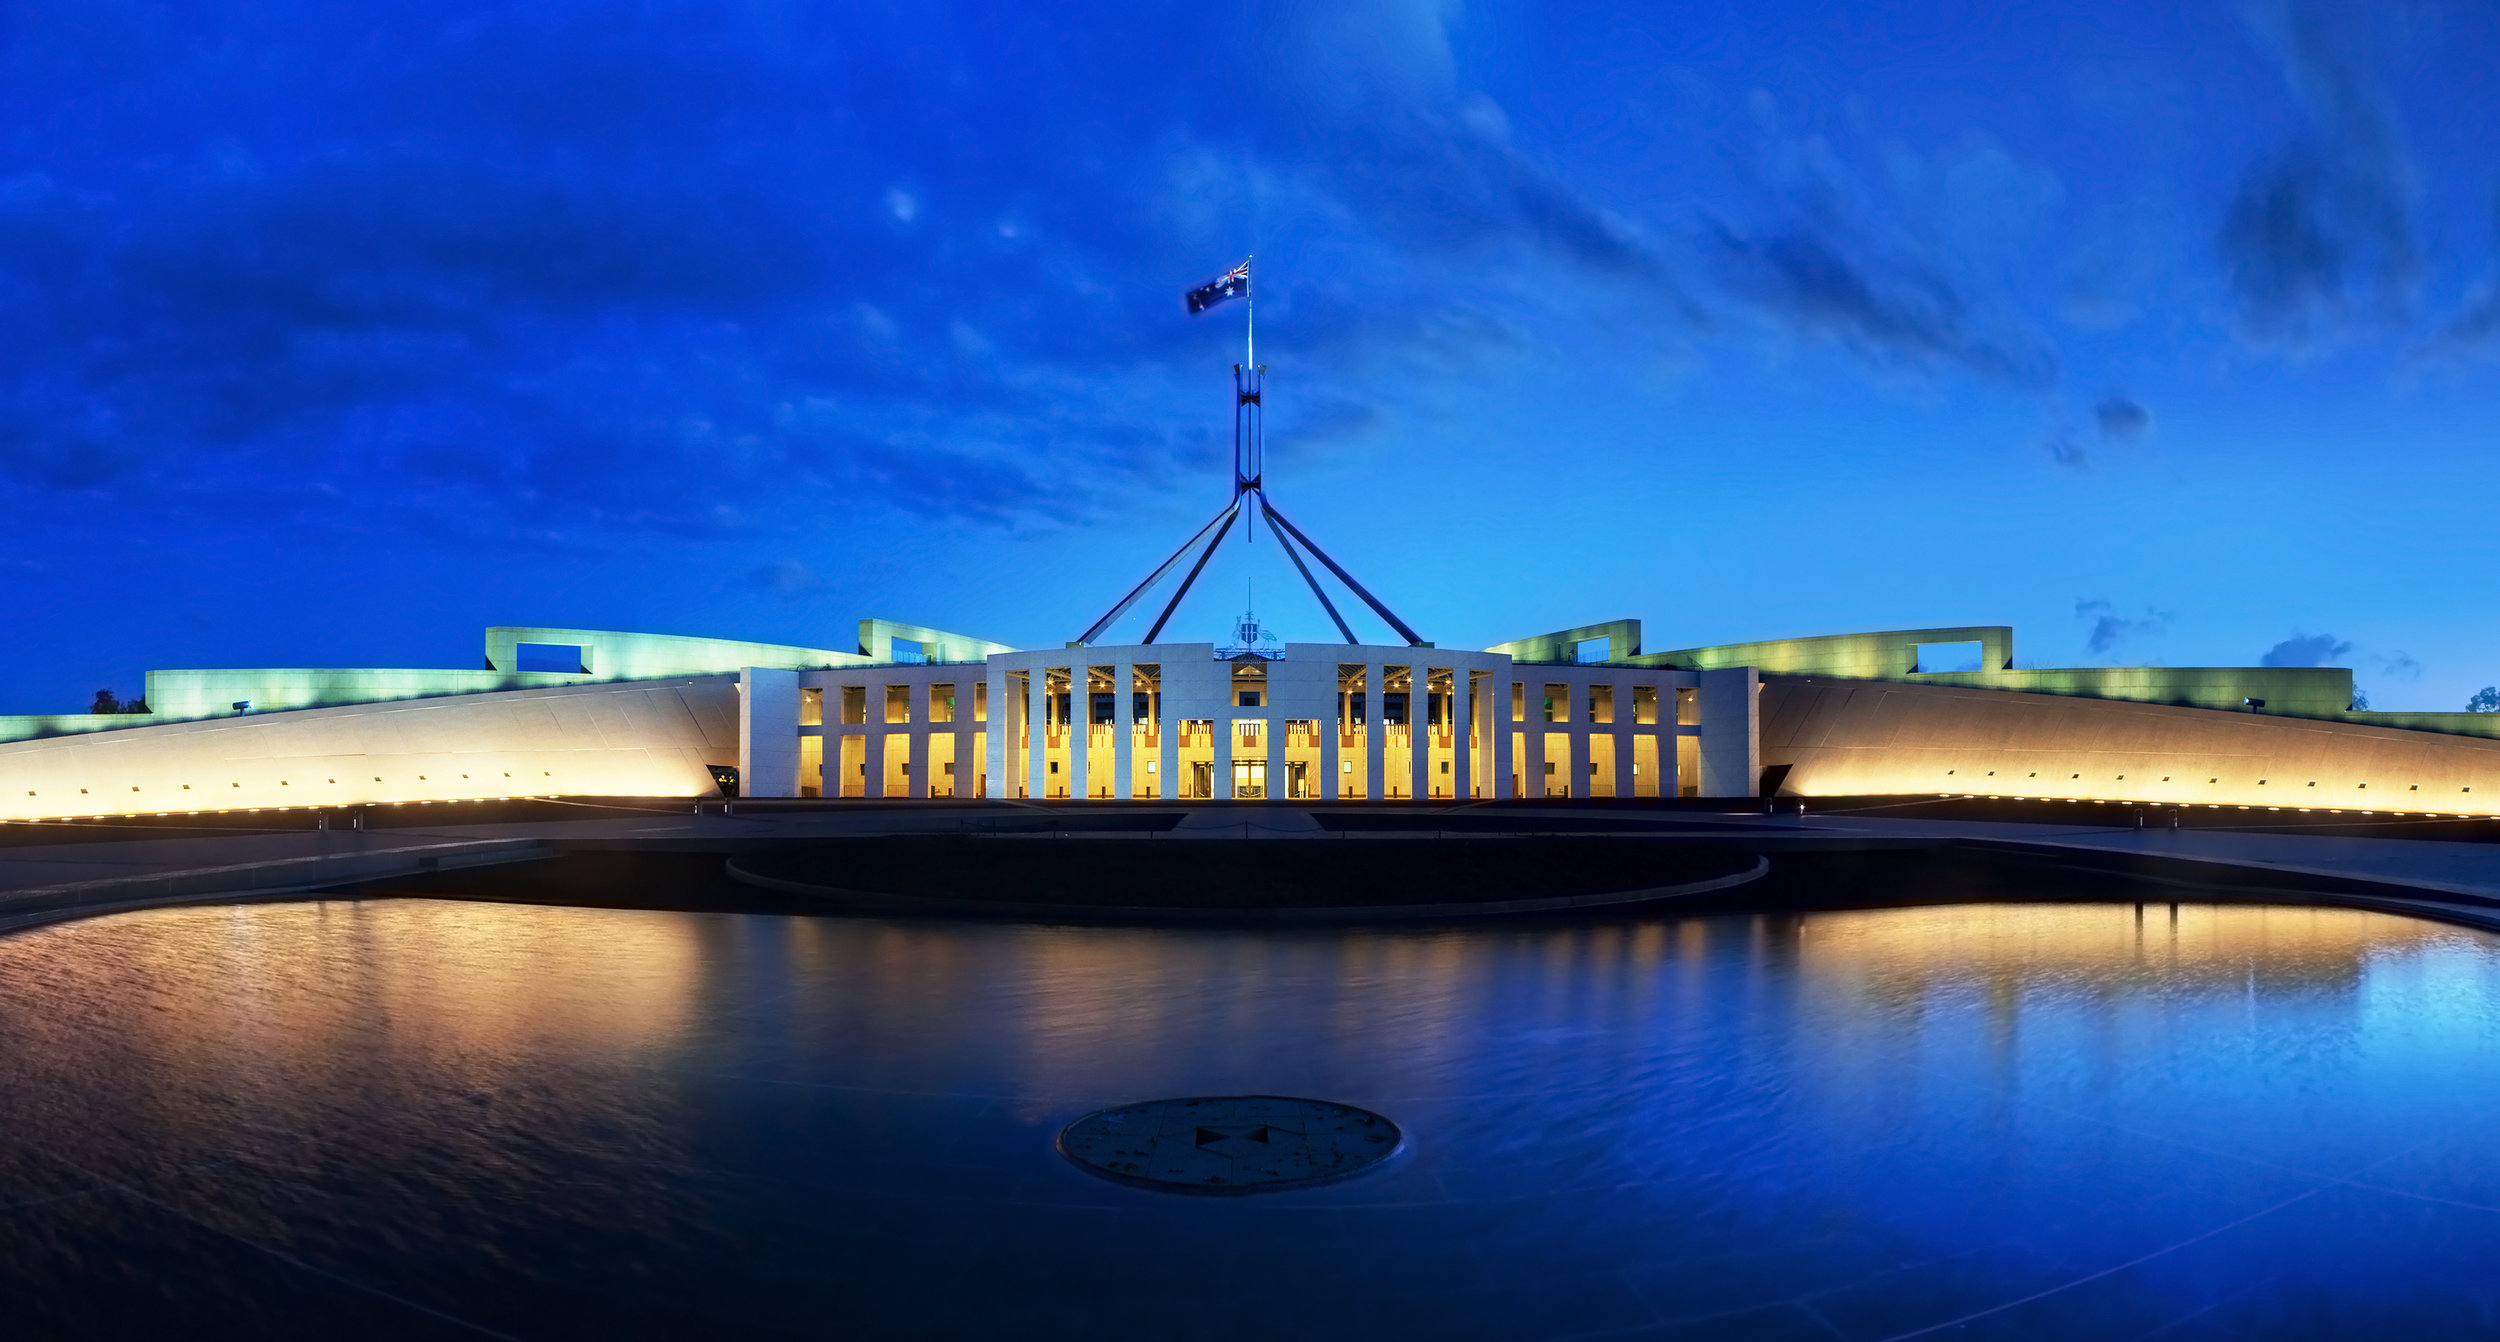 Government inquiry training   An appearance before a parliamentary committee or inquiry provides an opportunity to influence government policy and public debate. Let us help prepare you.